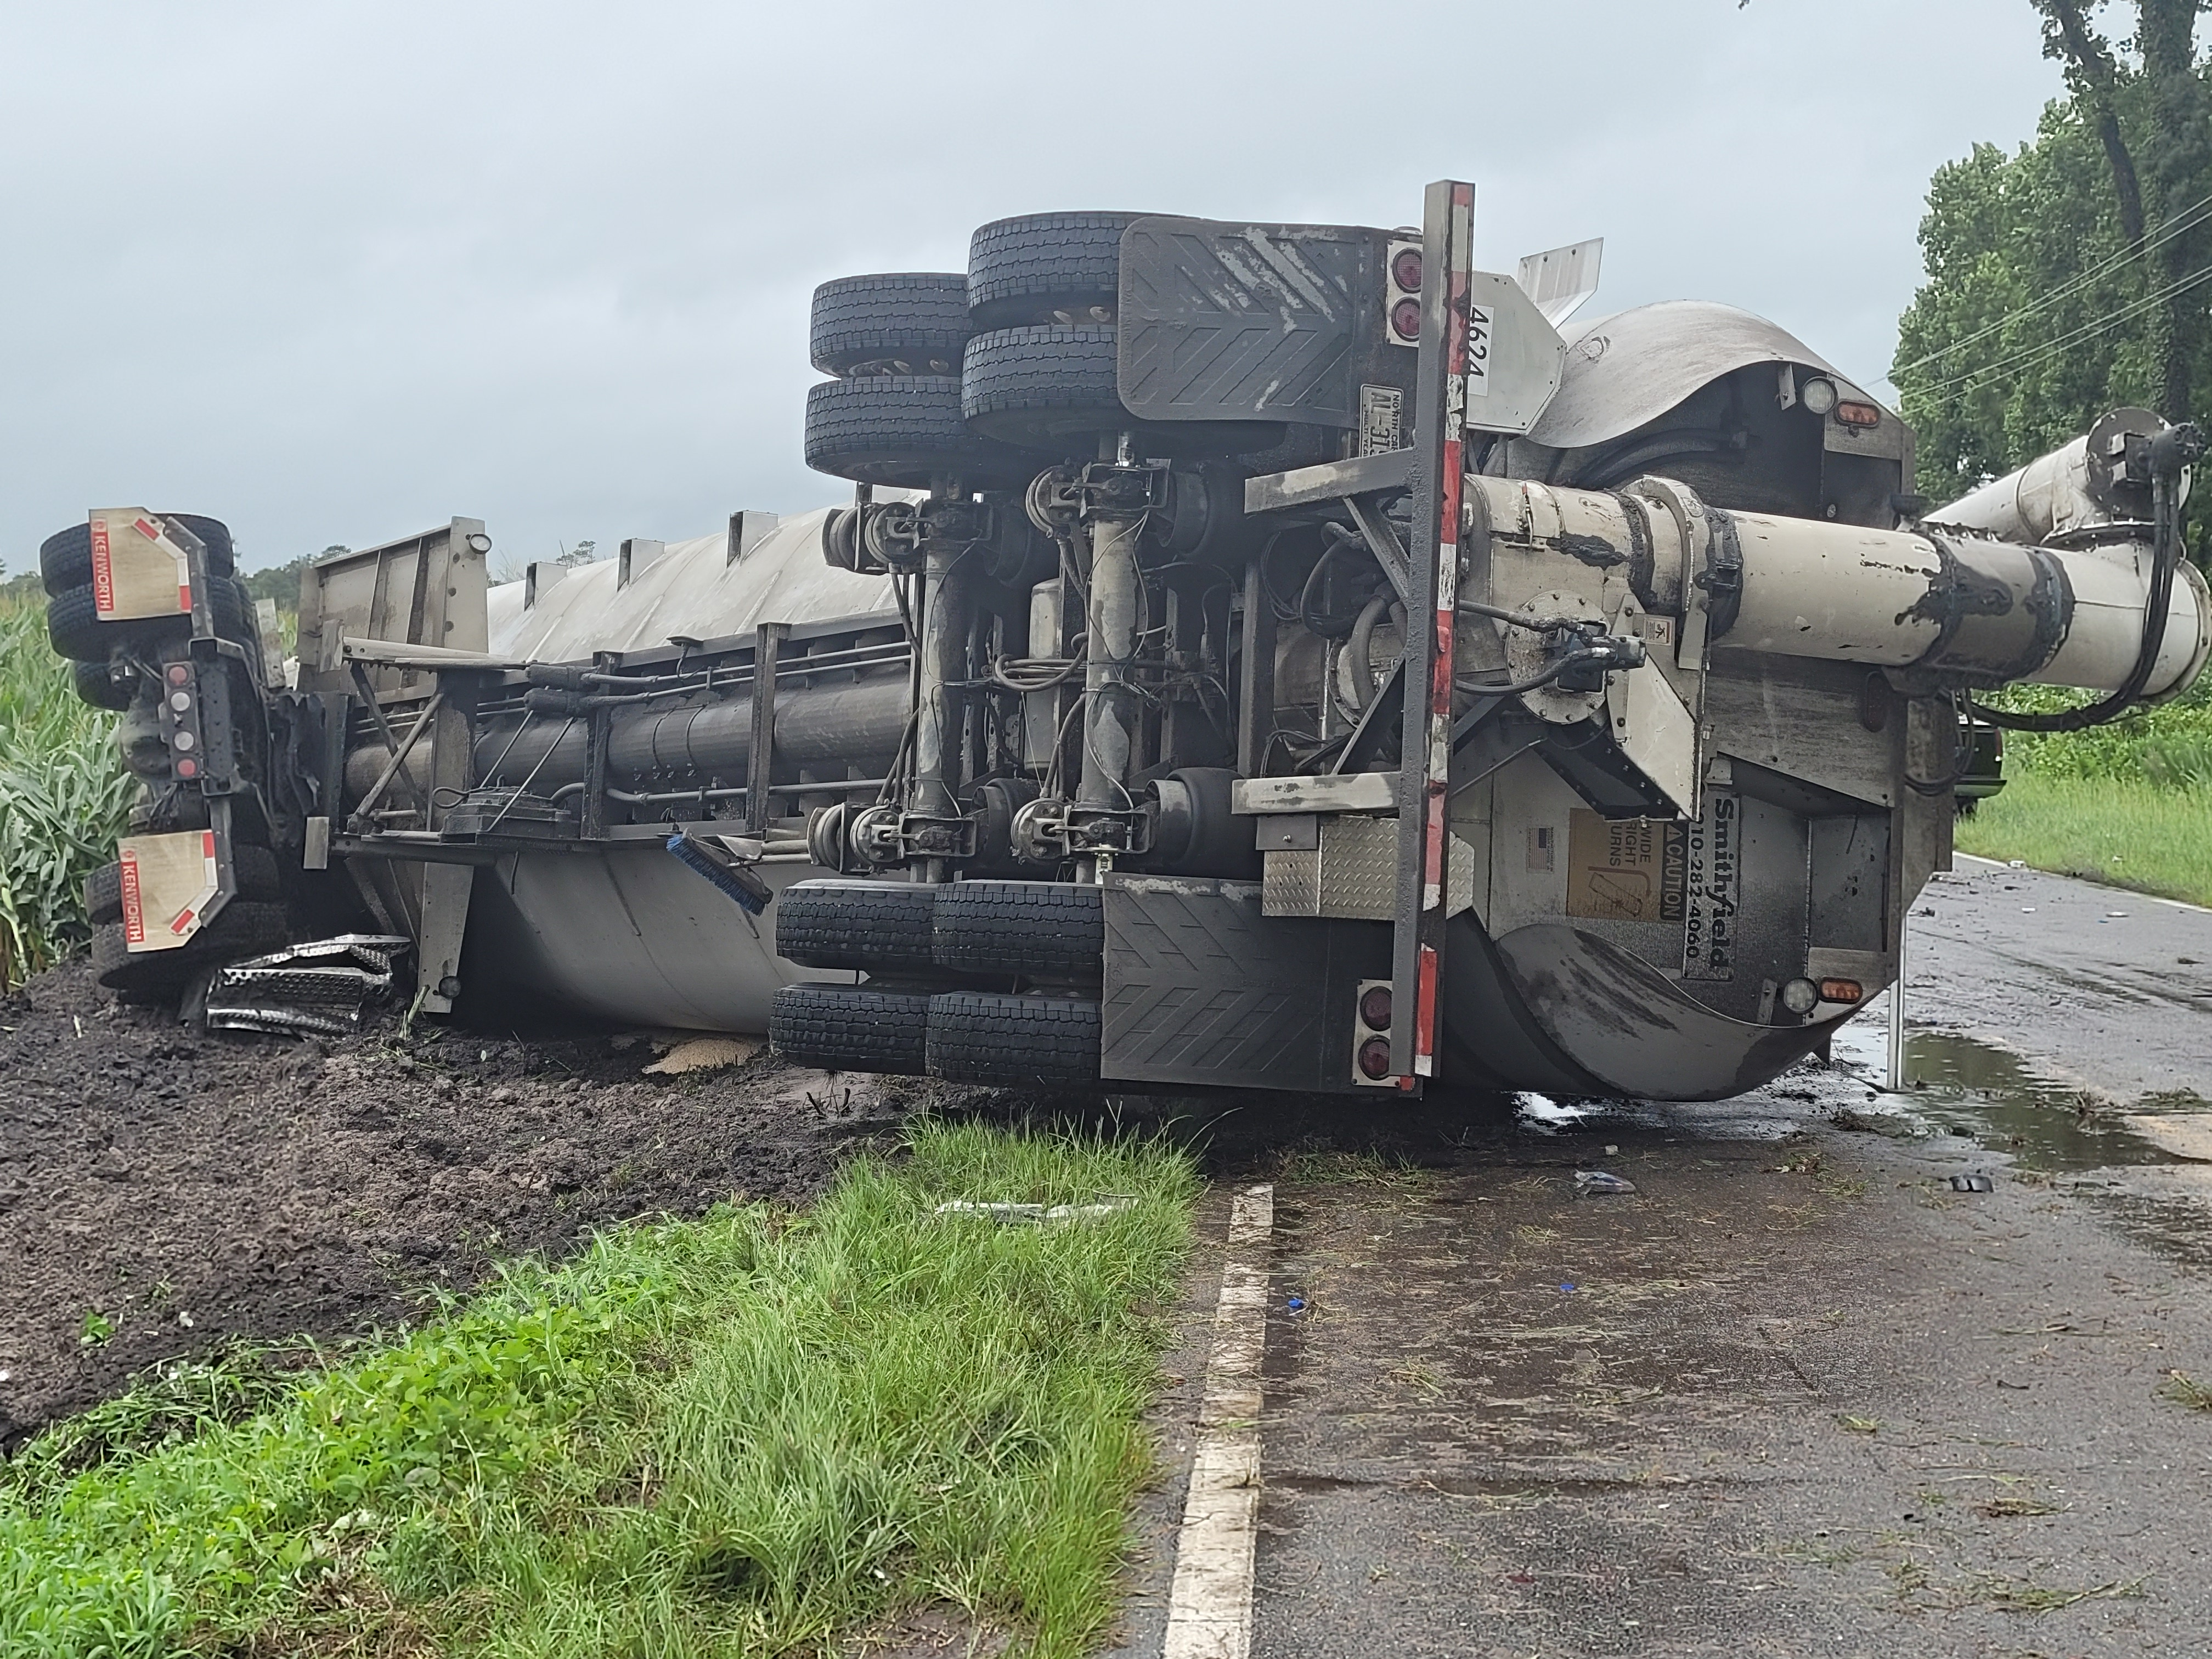 Duplin County Road Closed Due To Overturned Semi